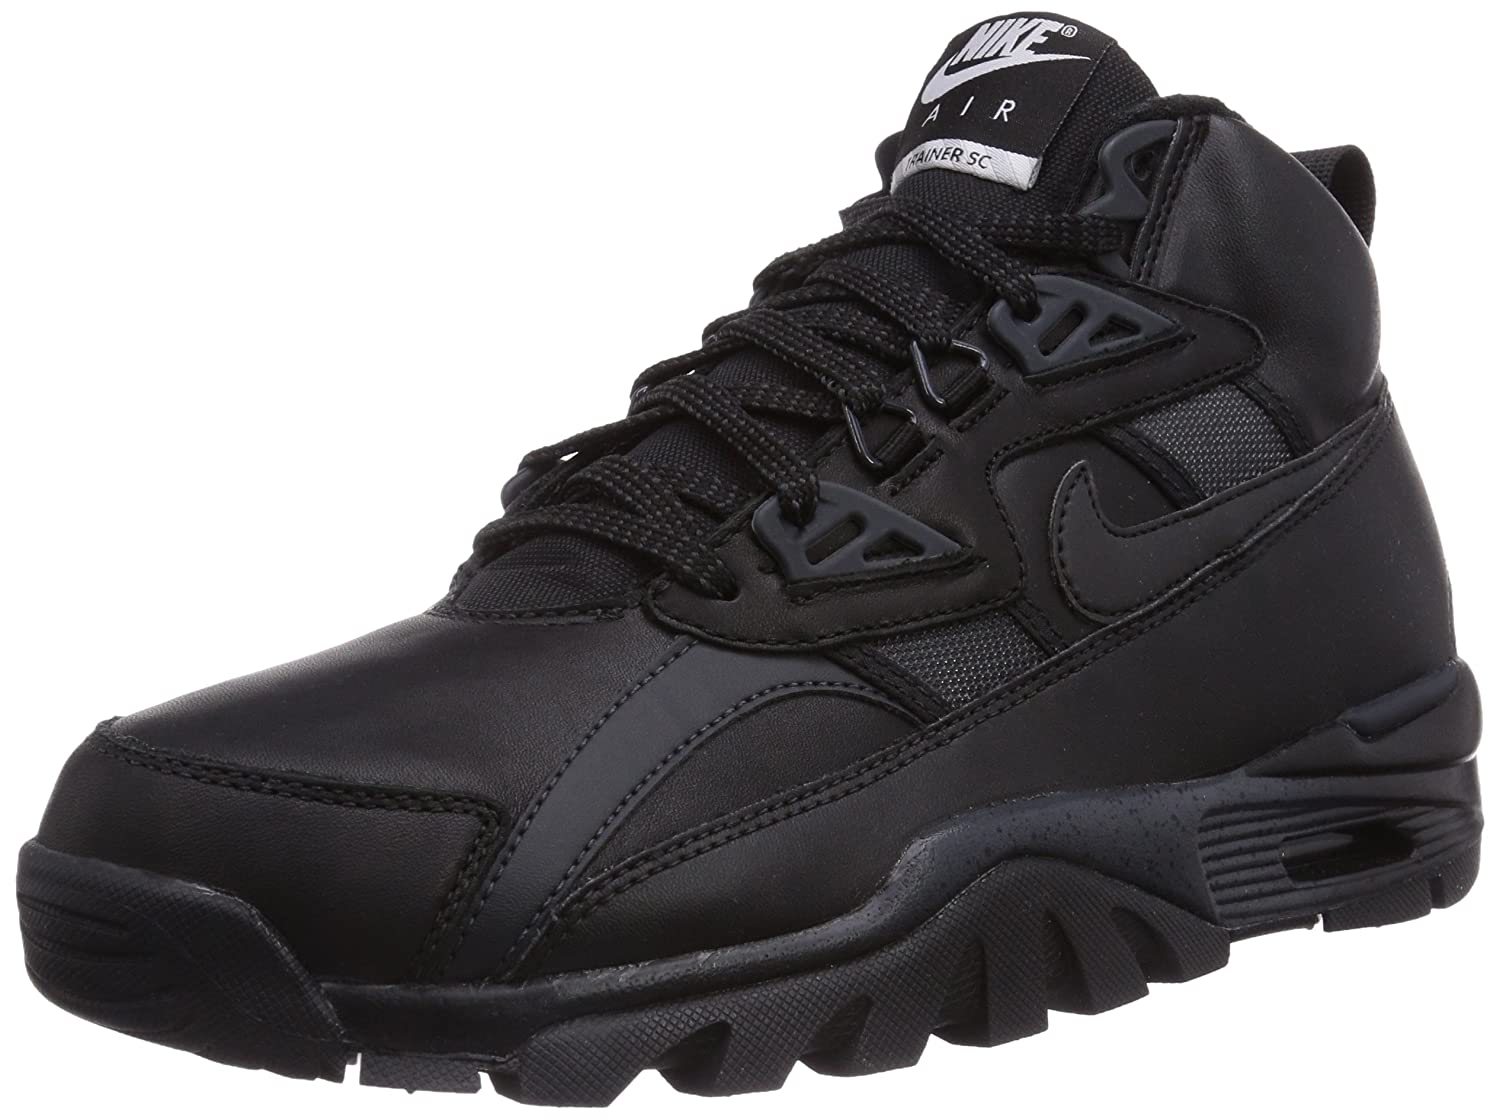 taille 40 e680f aef36 NIKE Air Trainer SC Sneakerboot 684713-002 Baskets Homme ...